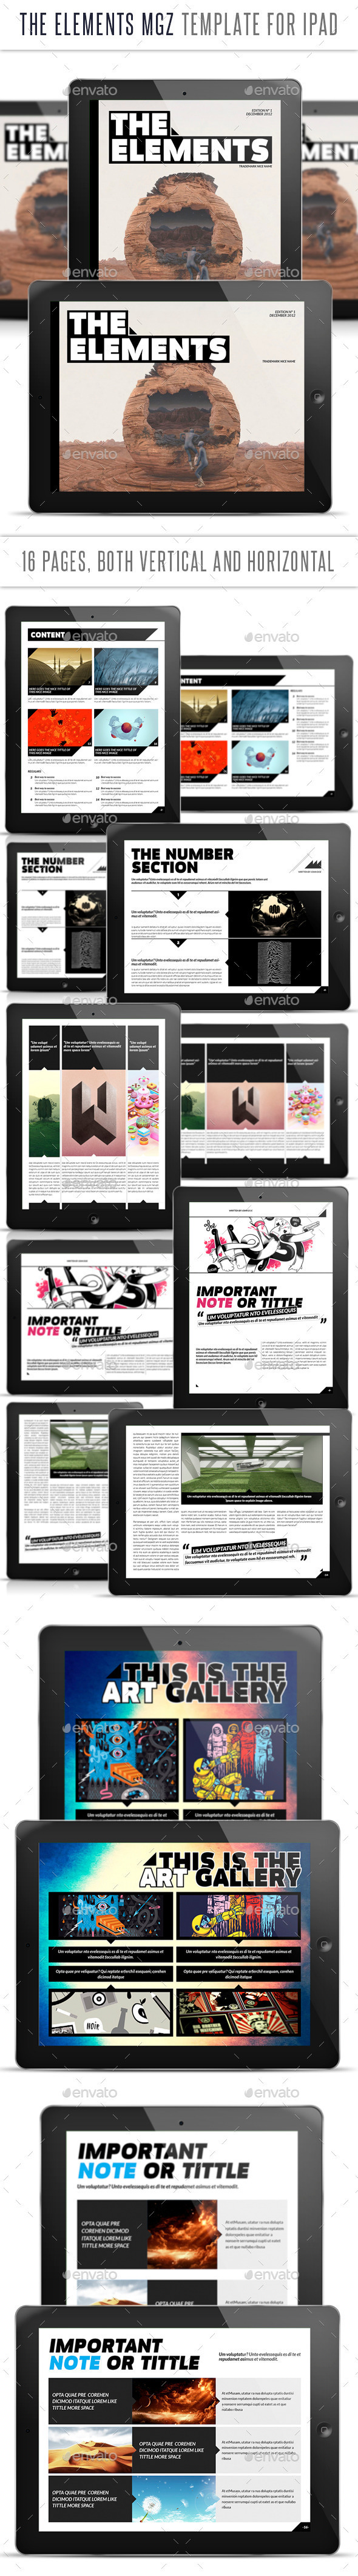 The Elements for Tablet Indesign Template - Digital Magazines ePublishing